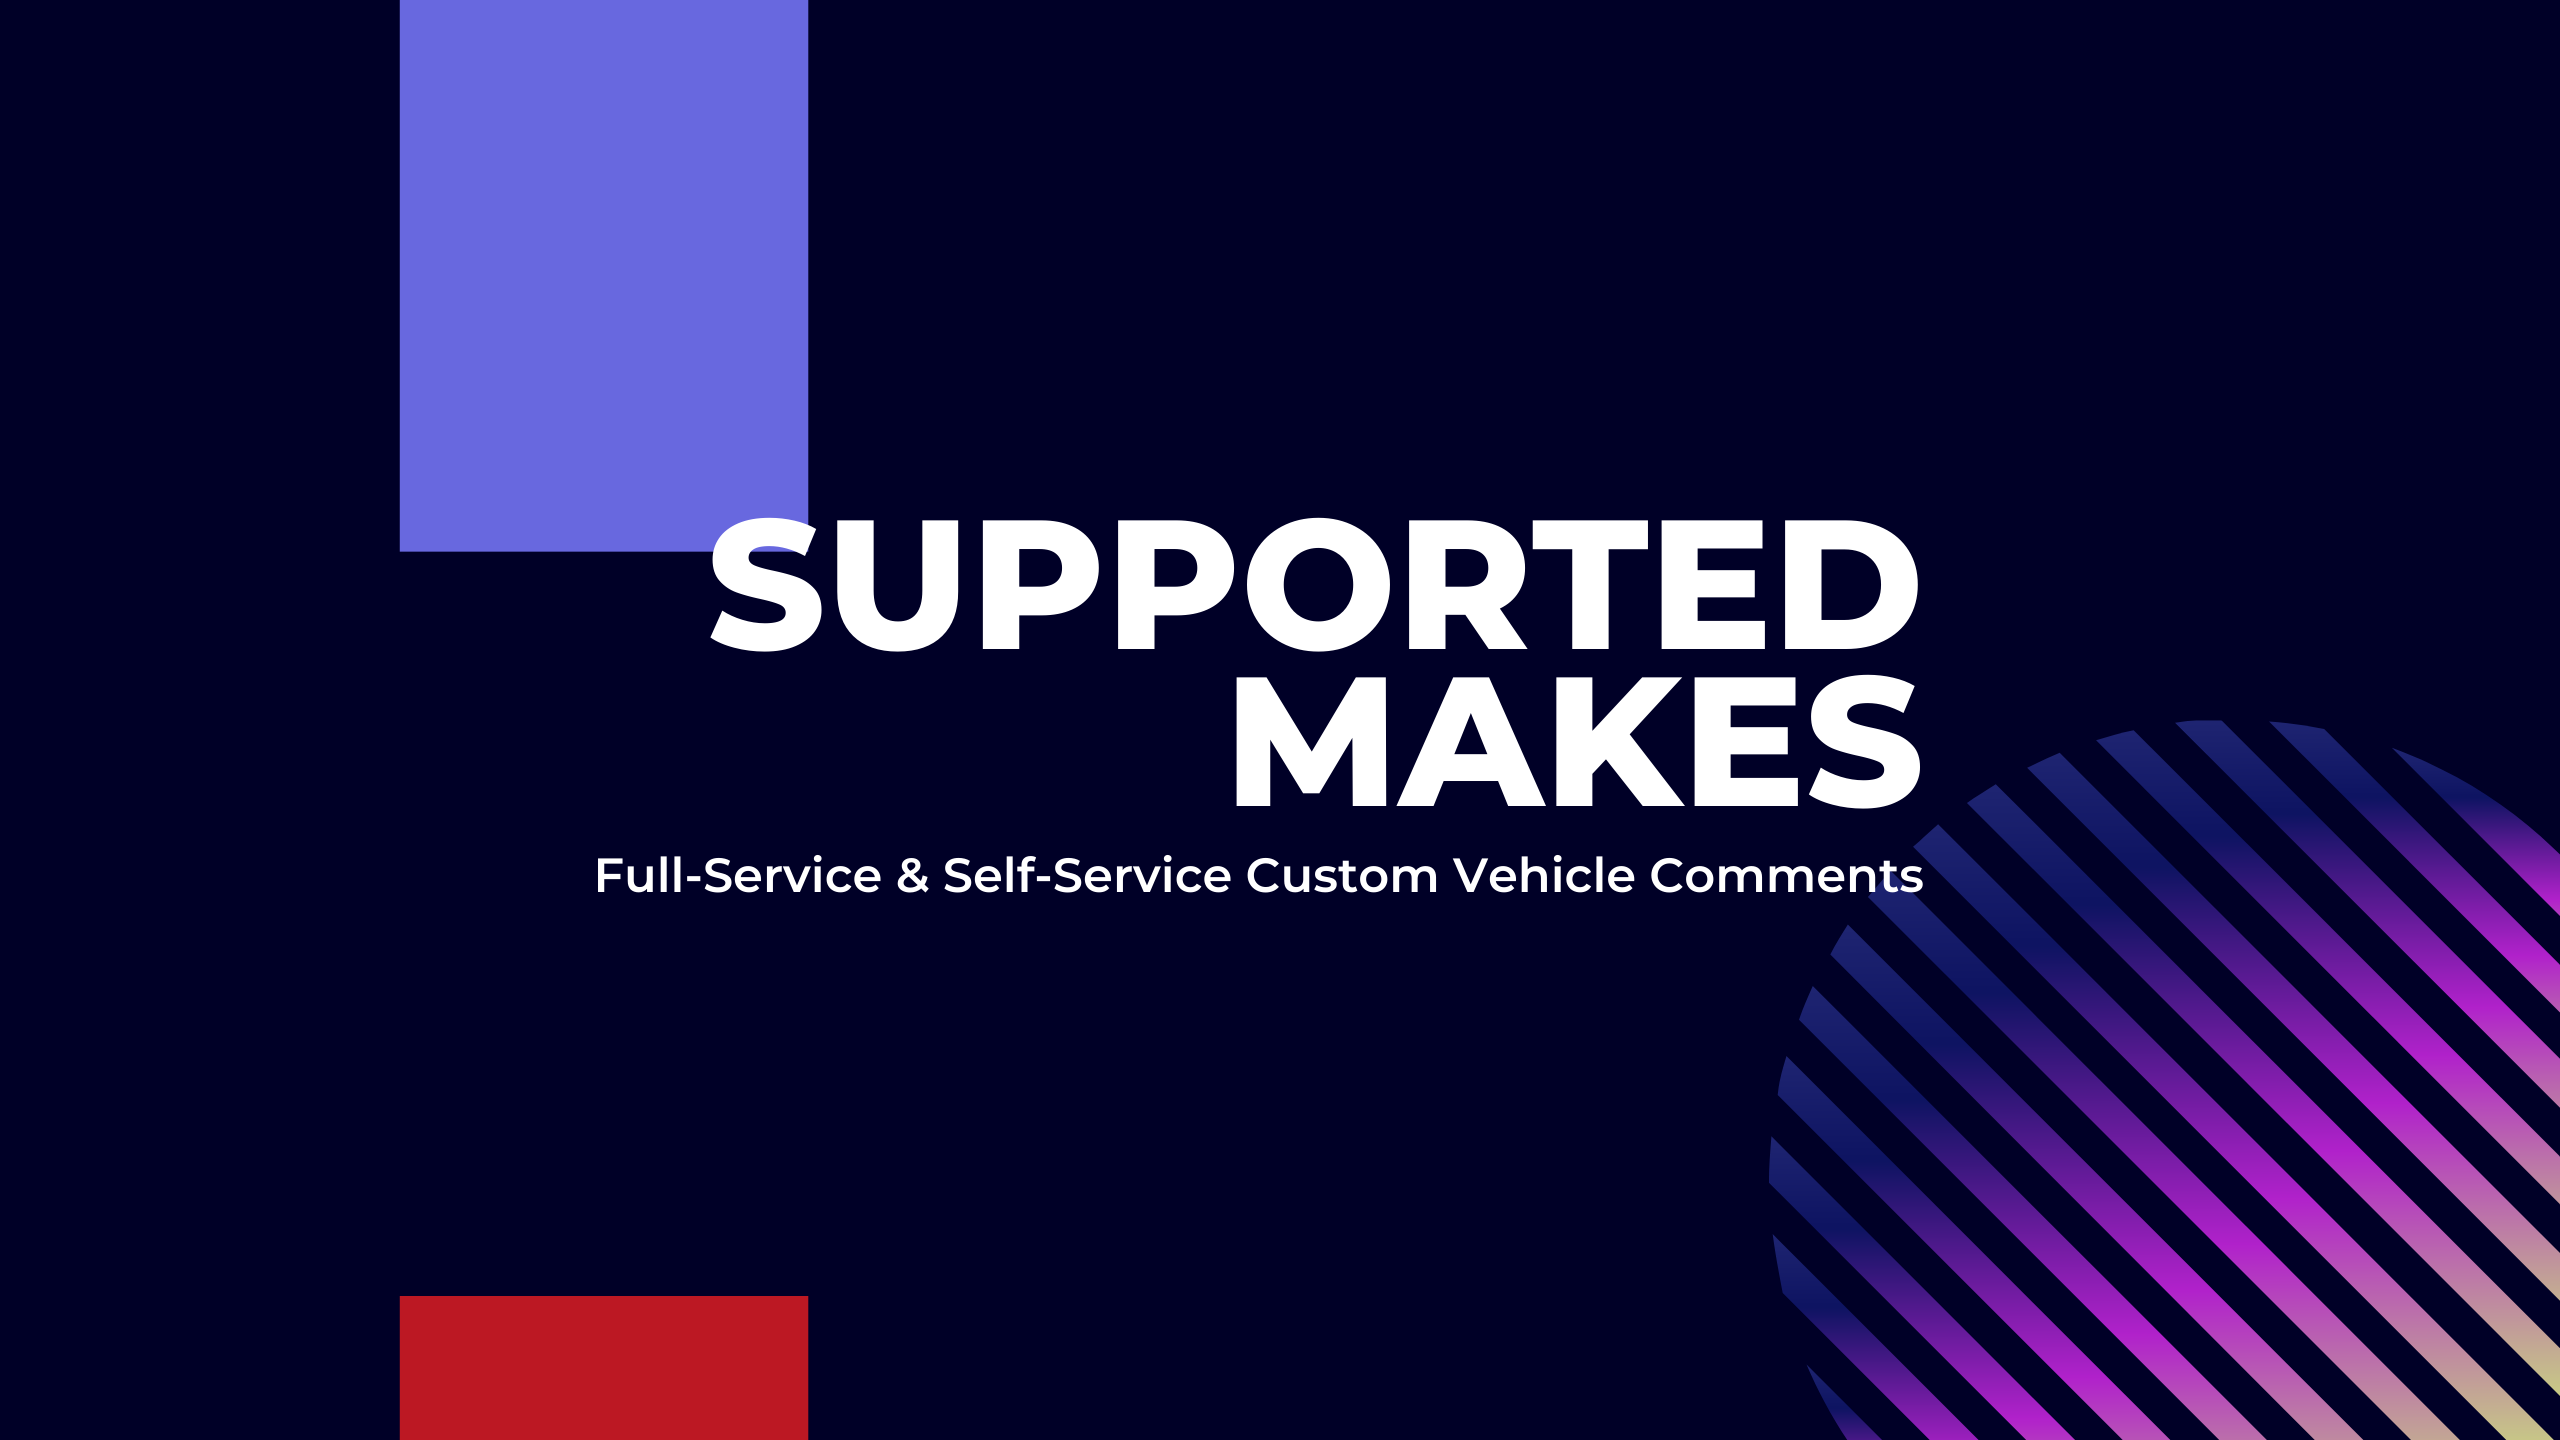 Supported Makes